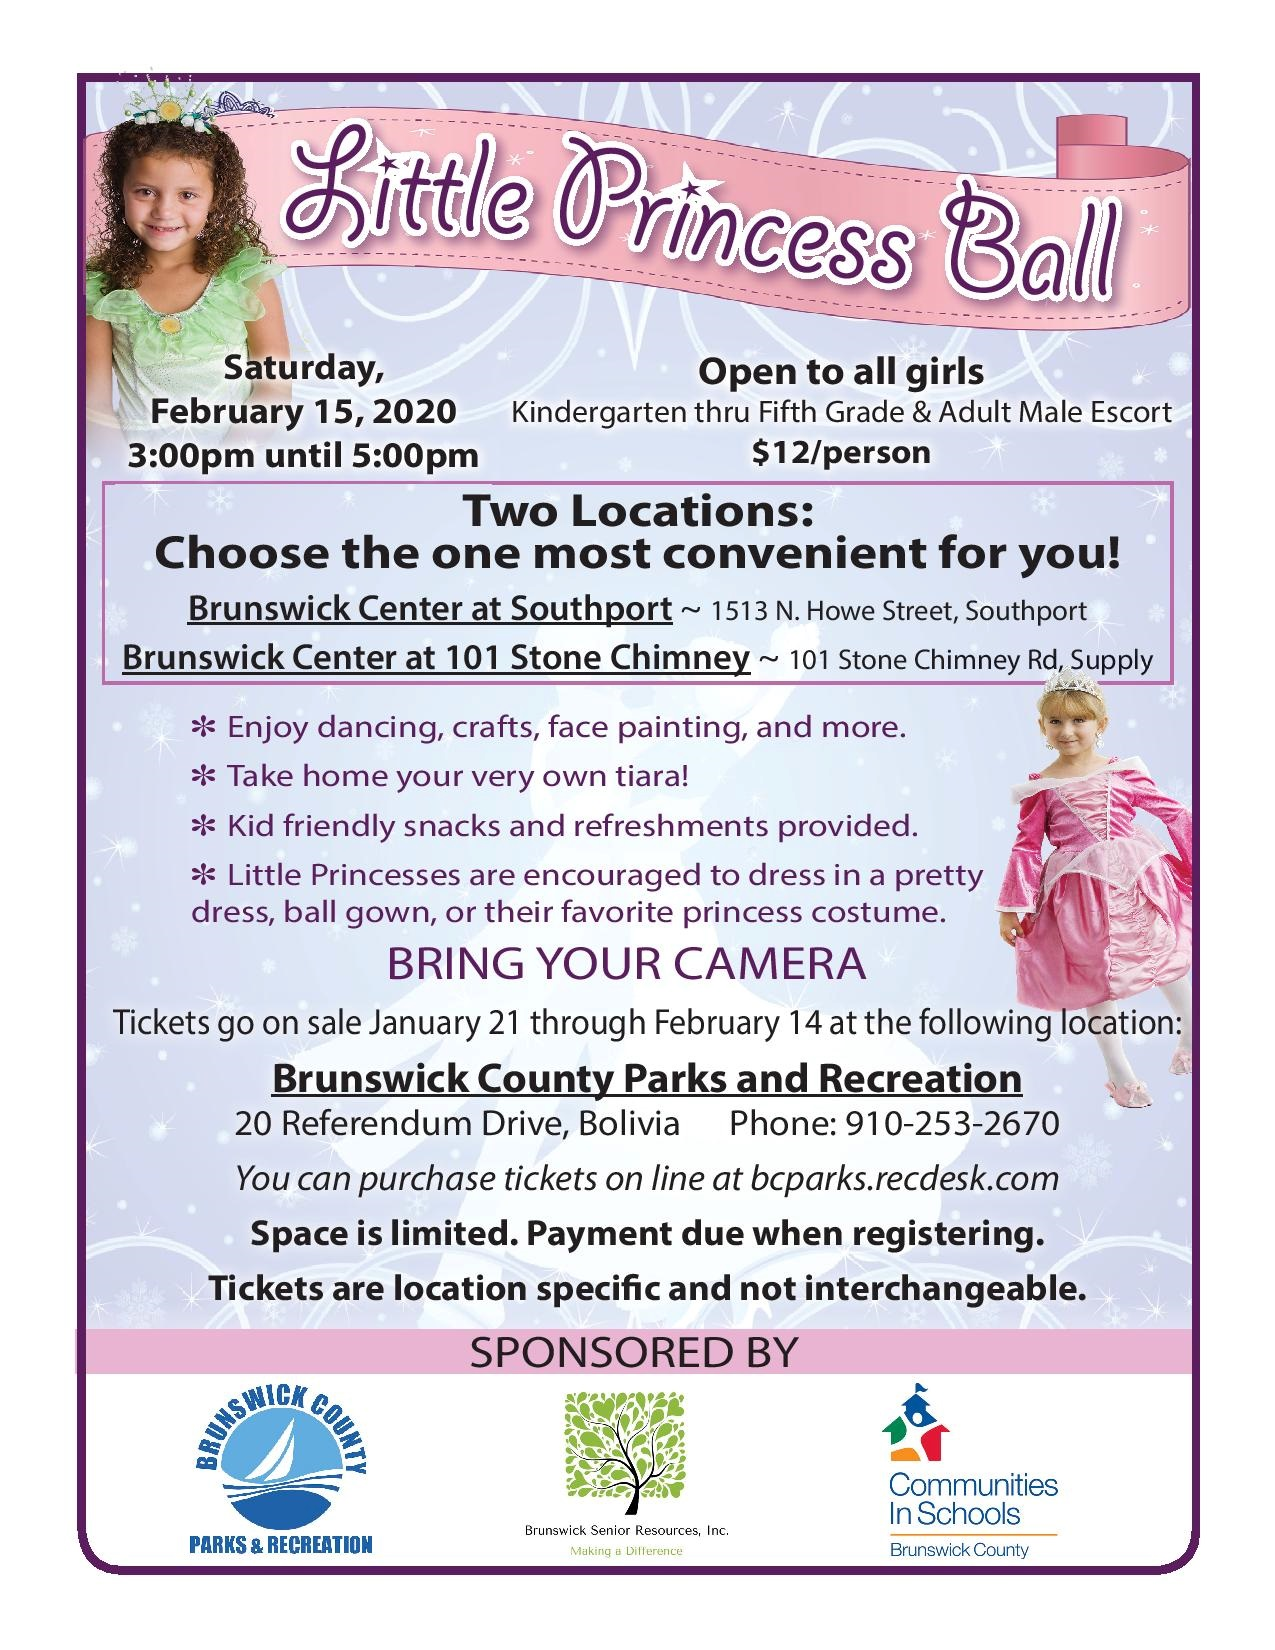 /Images/nbchamber/Blog/NewFolder/Little Princess Ball creates memories for a lifetime/LittlePrincess_flyer_021520.jpg